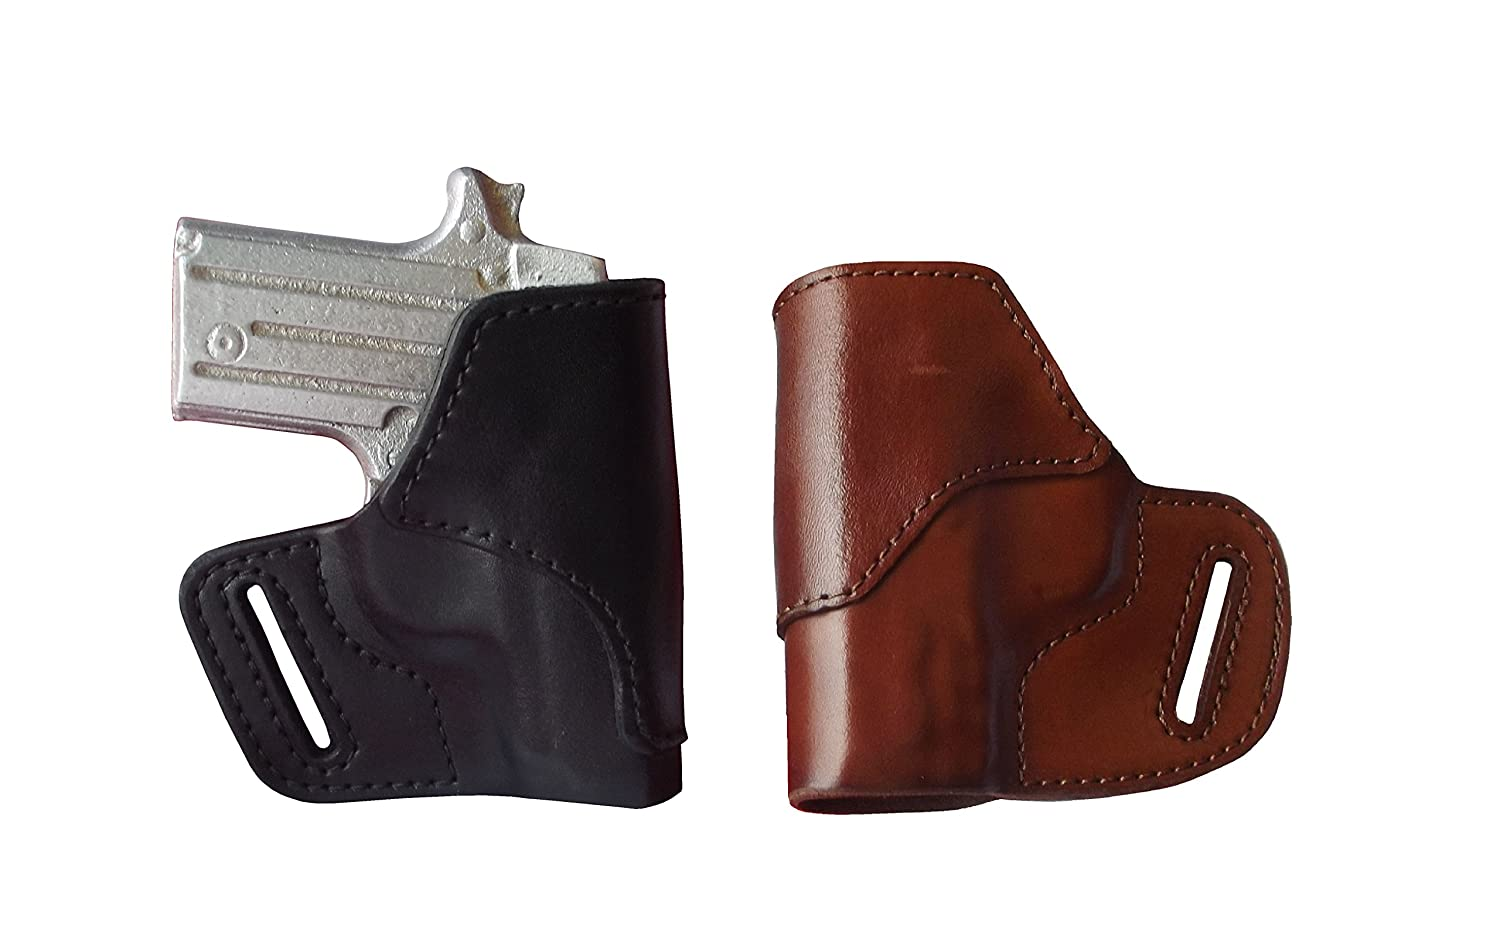 J&J CUSTOM FIT RUGER LCP II (LCP 2) OWB Belt Carry Formed Premium Leather  Holster